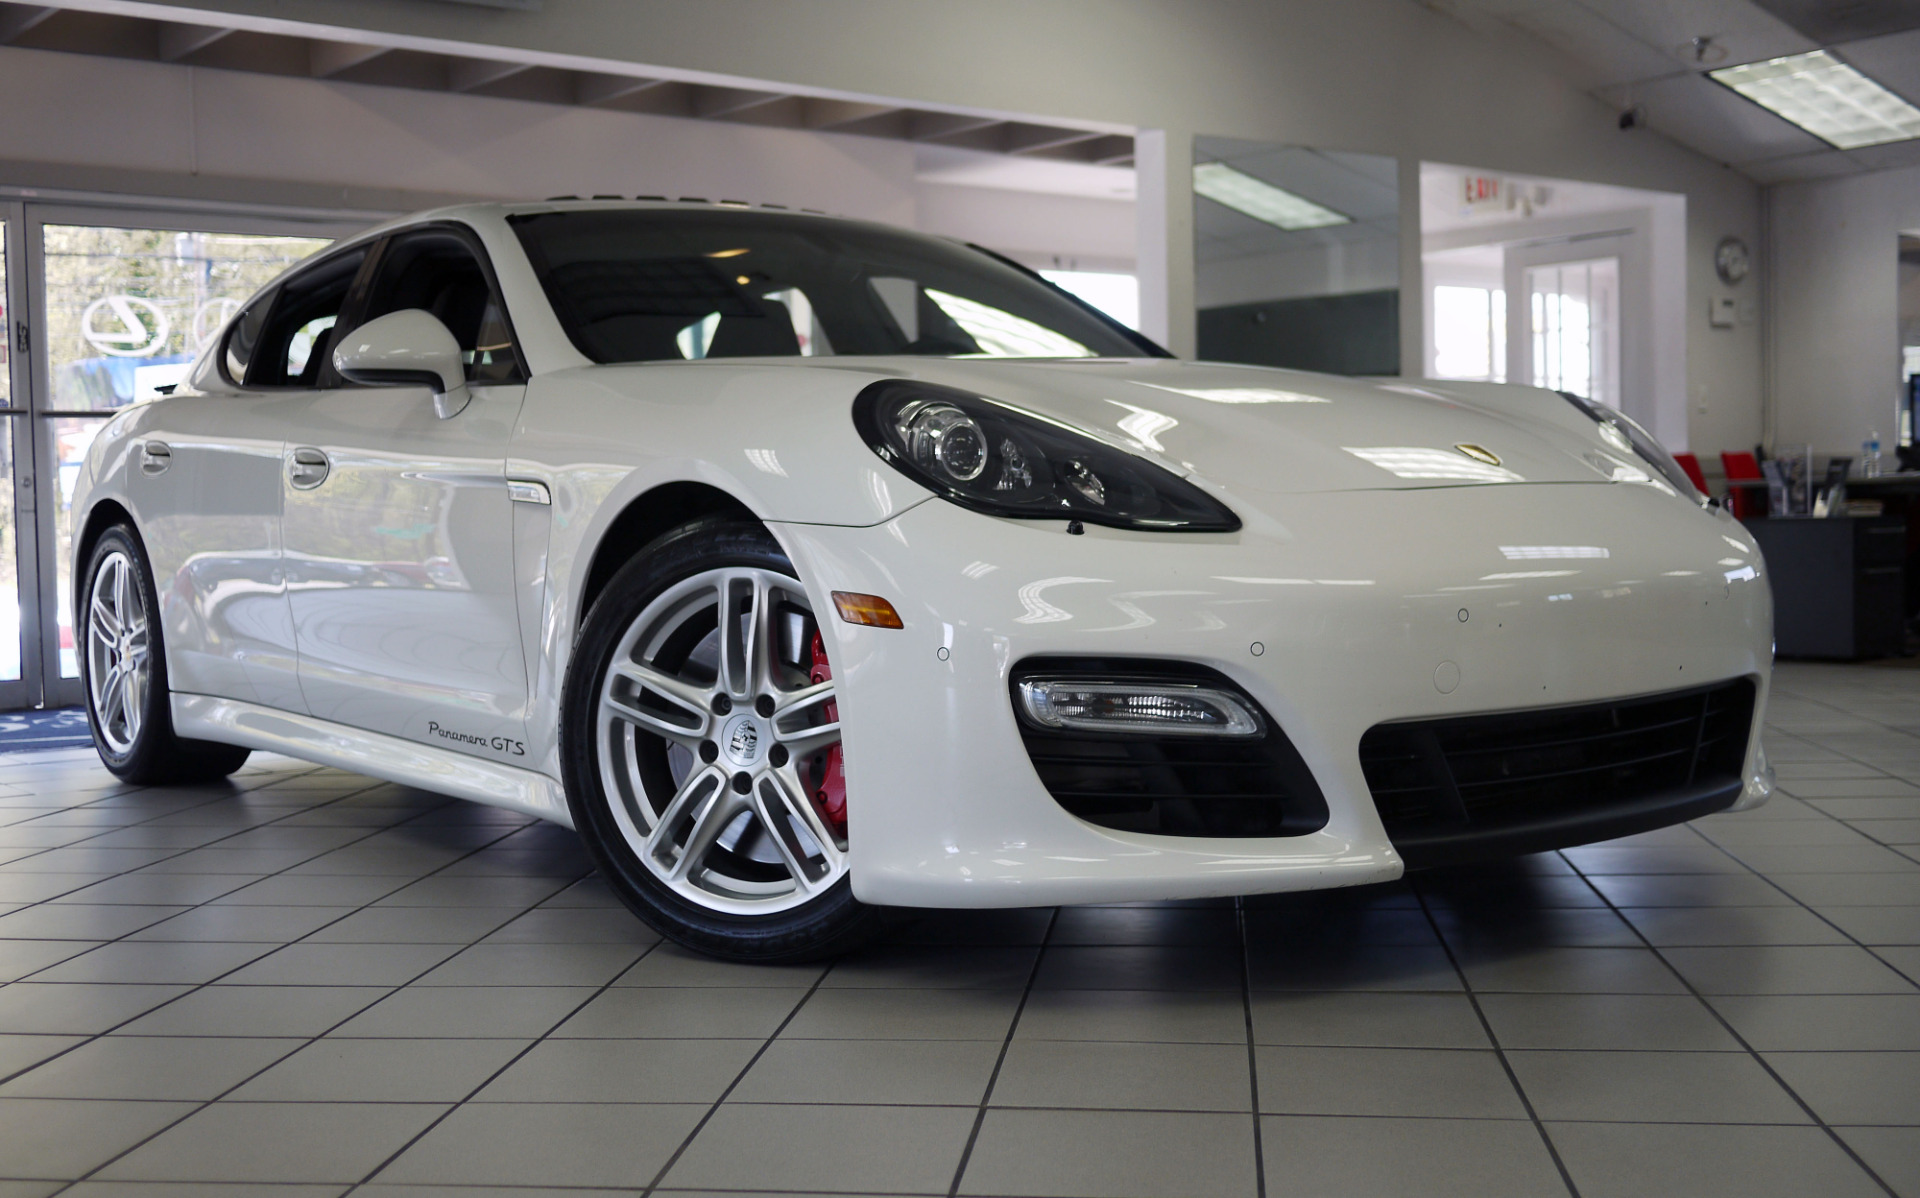 used 2013 porsche panamera gts marietta ga. Black Bedroom Furniture Sets. Home Design Ideas